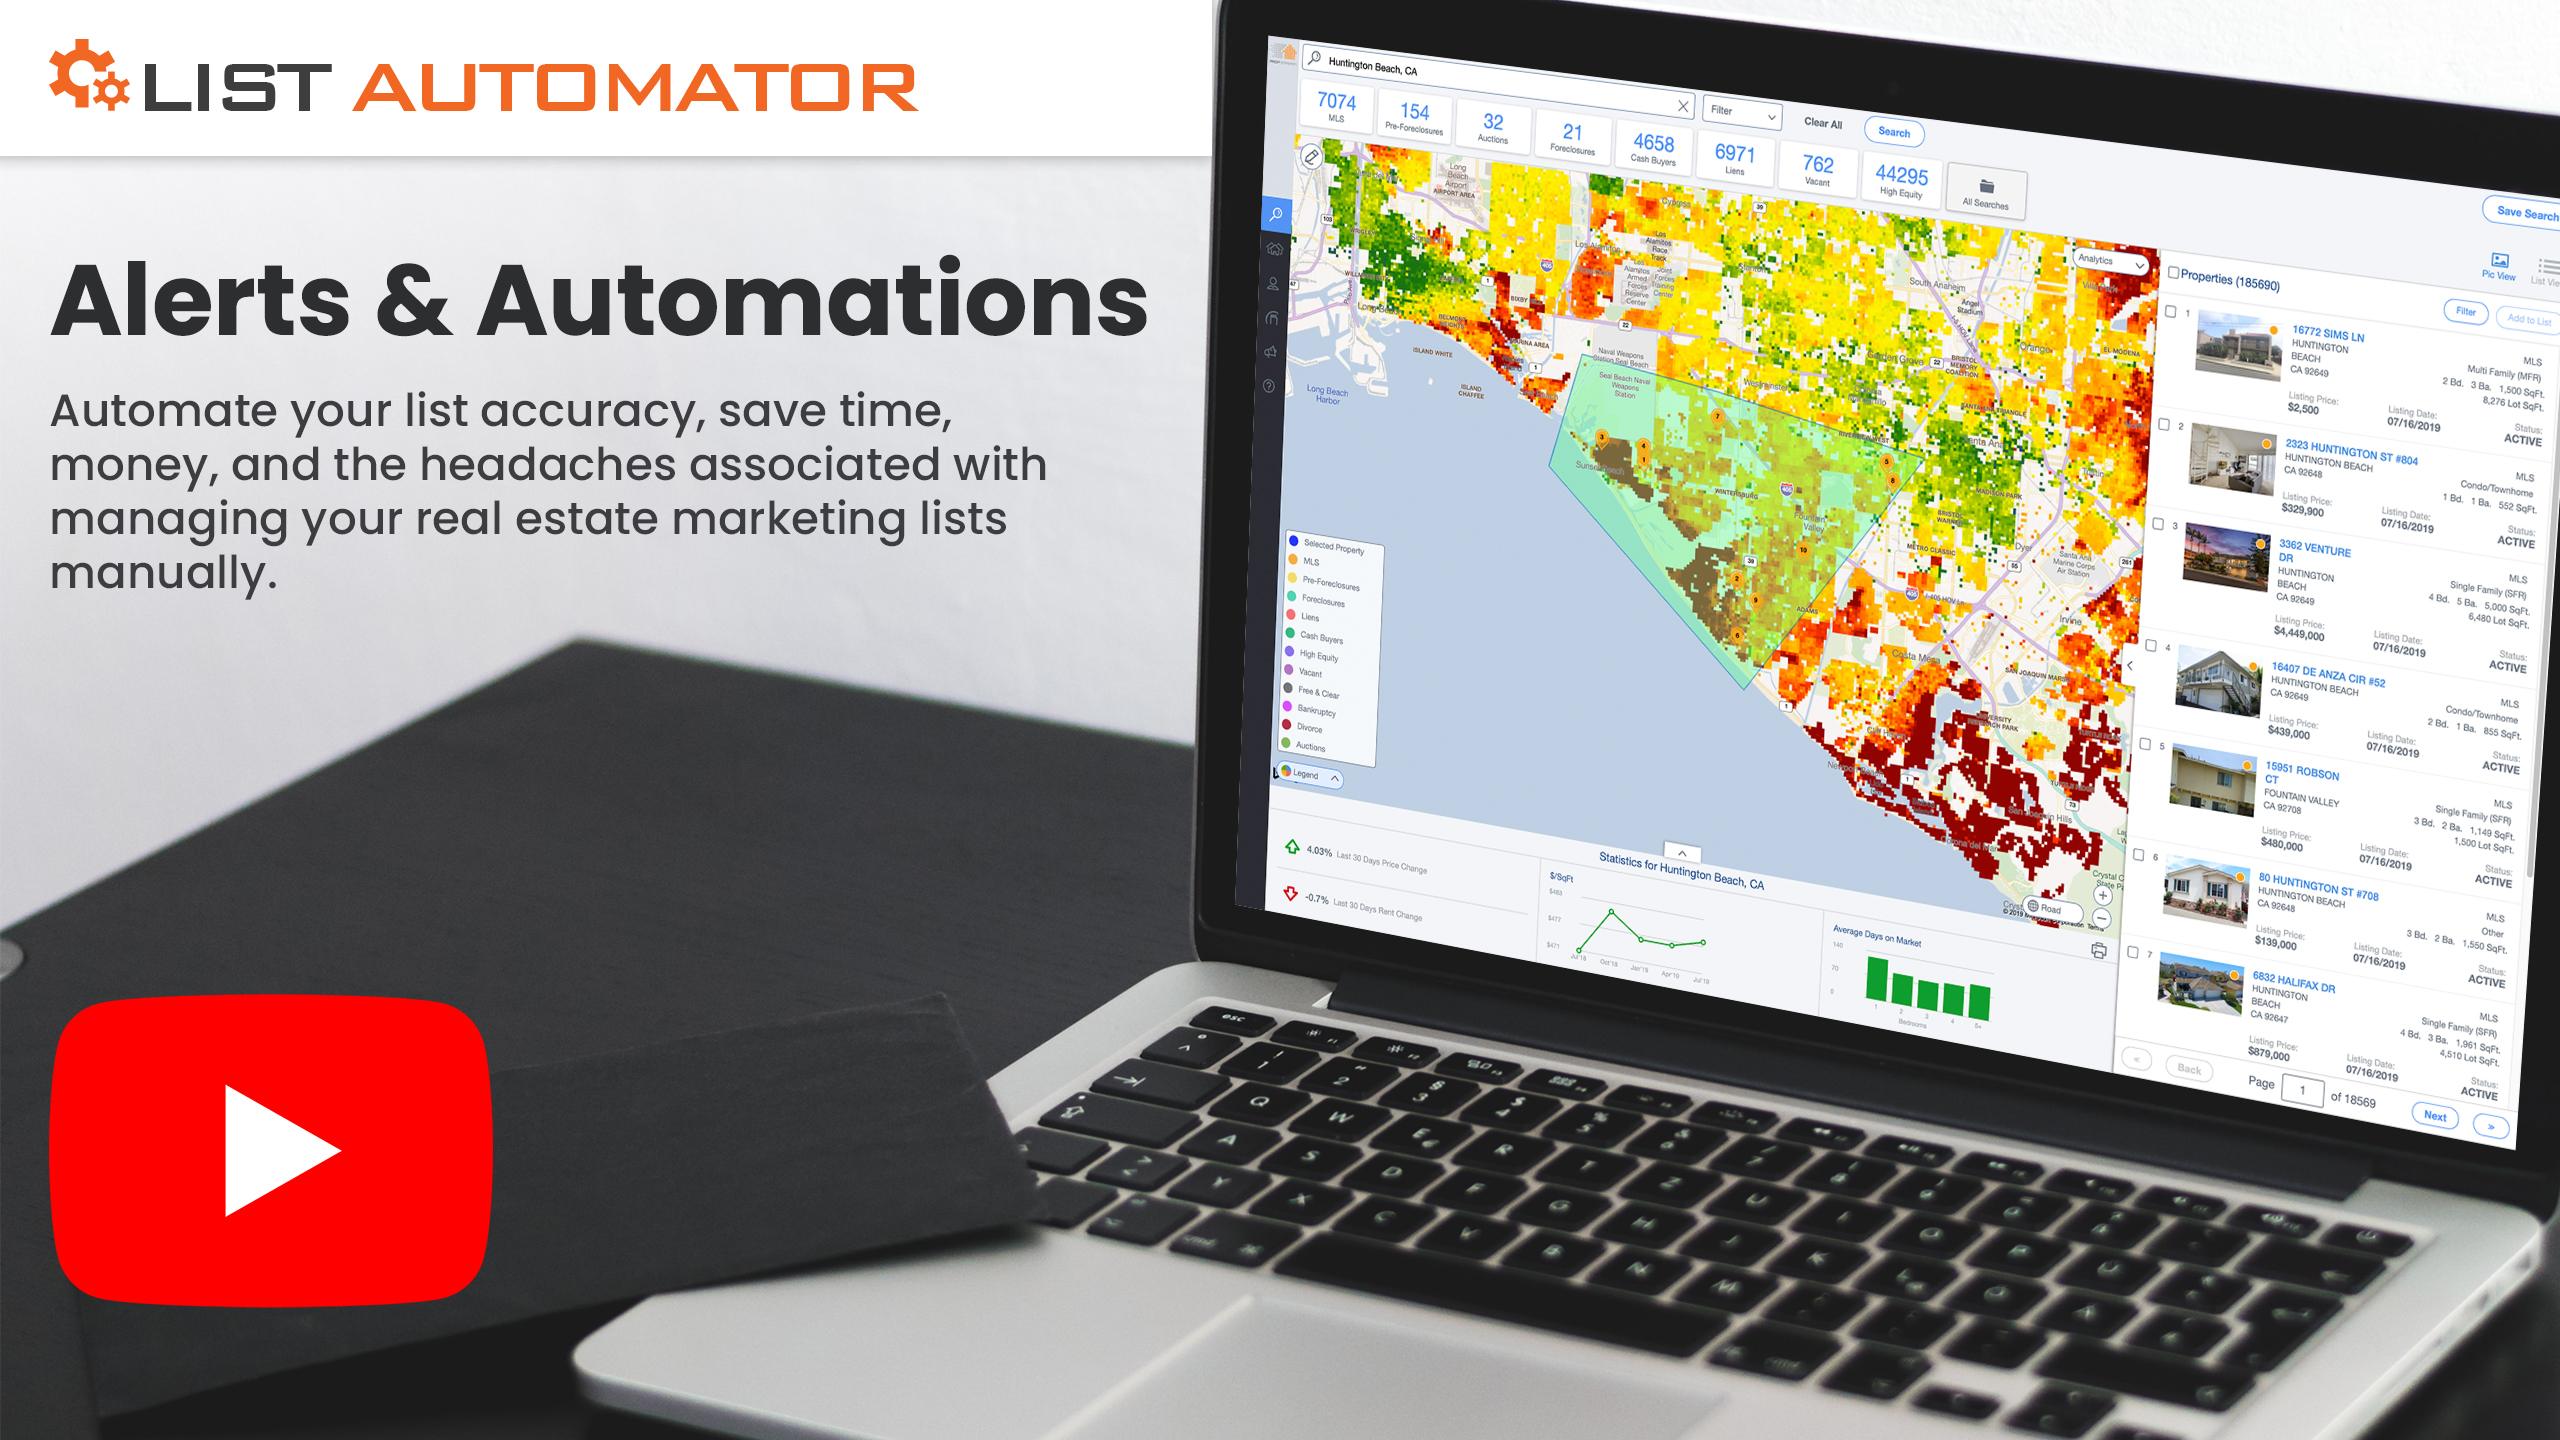 Alerts and Automations